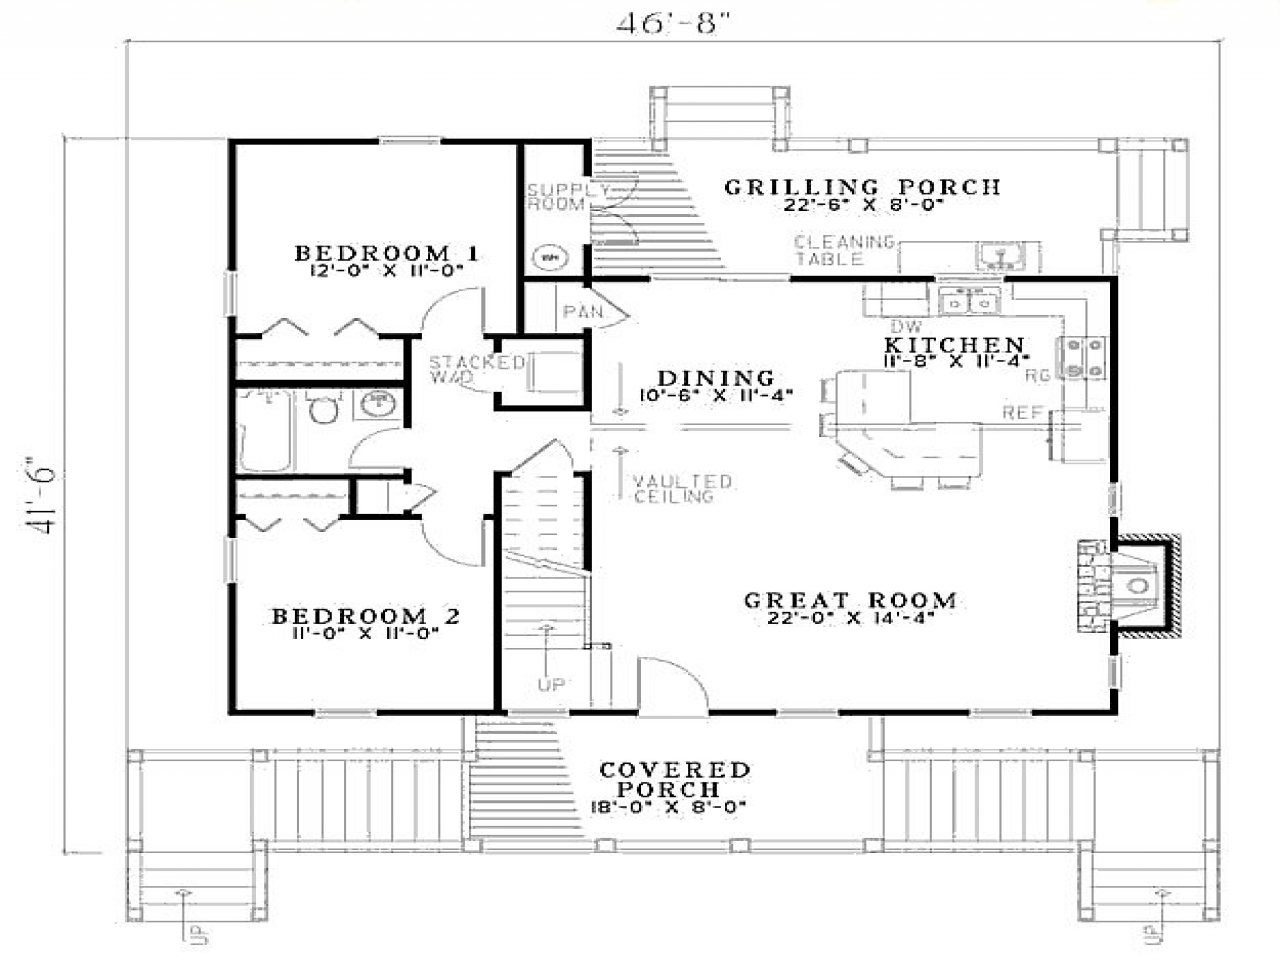 3 bedroom beach house floor plan beach house guest for 3 bedroom beach house designs